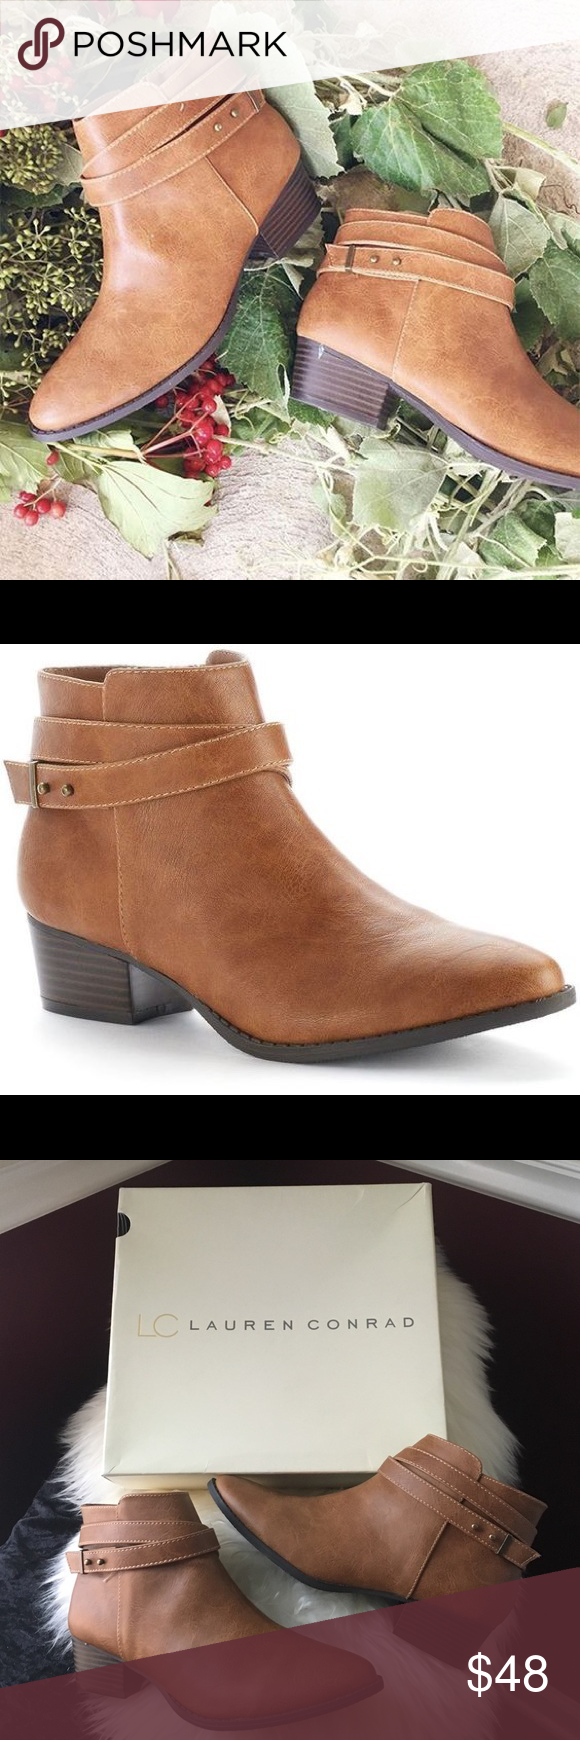 """LC Lauren Conrad """" Belle"""" Strappy Ankle Boot Strappy upper. Stacked chunky heel. Side zipper. Details: pointed toe. Fabric lining. Lightly padded footbed. Man made upper. TPR sole. 1 1/2"""" heel. Brand new in box. Color tan LC Lauren Conrad Shoes Ankle Boots & Booties"""